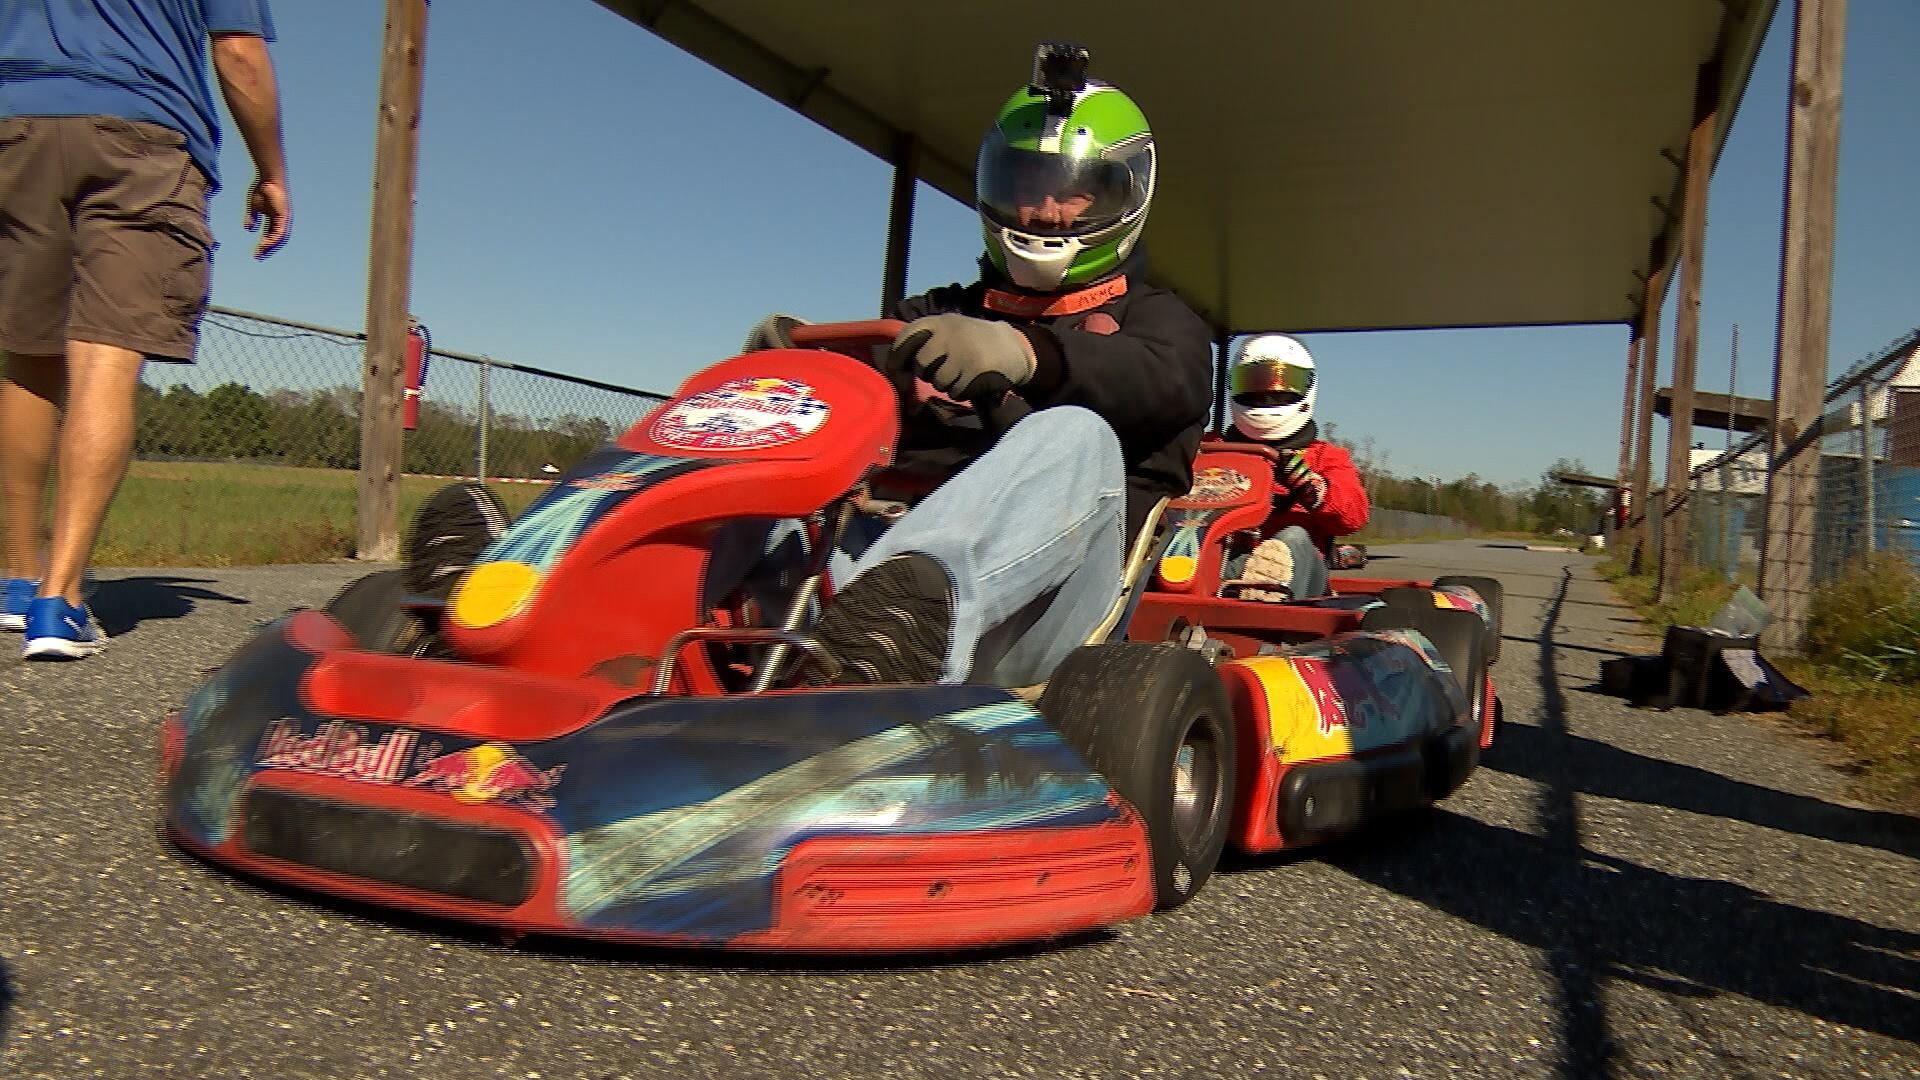 Monticello Karting and Motor Club